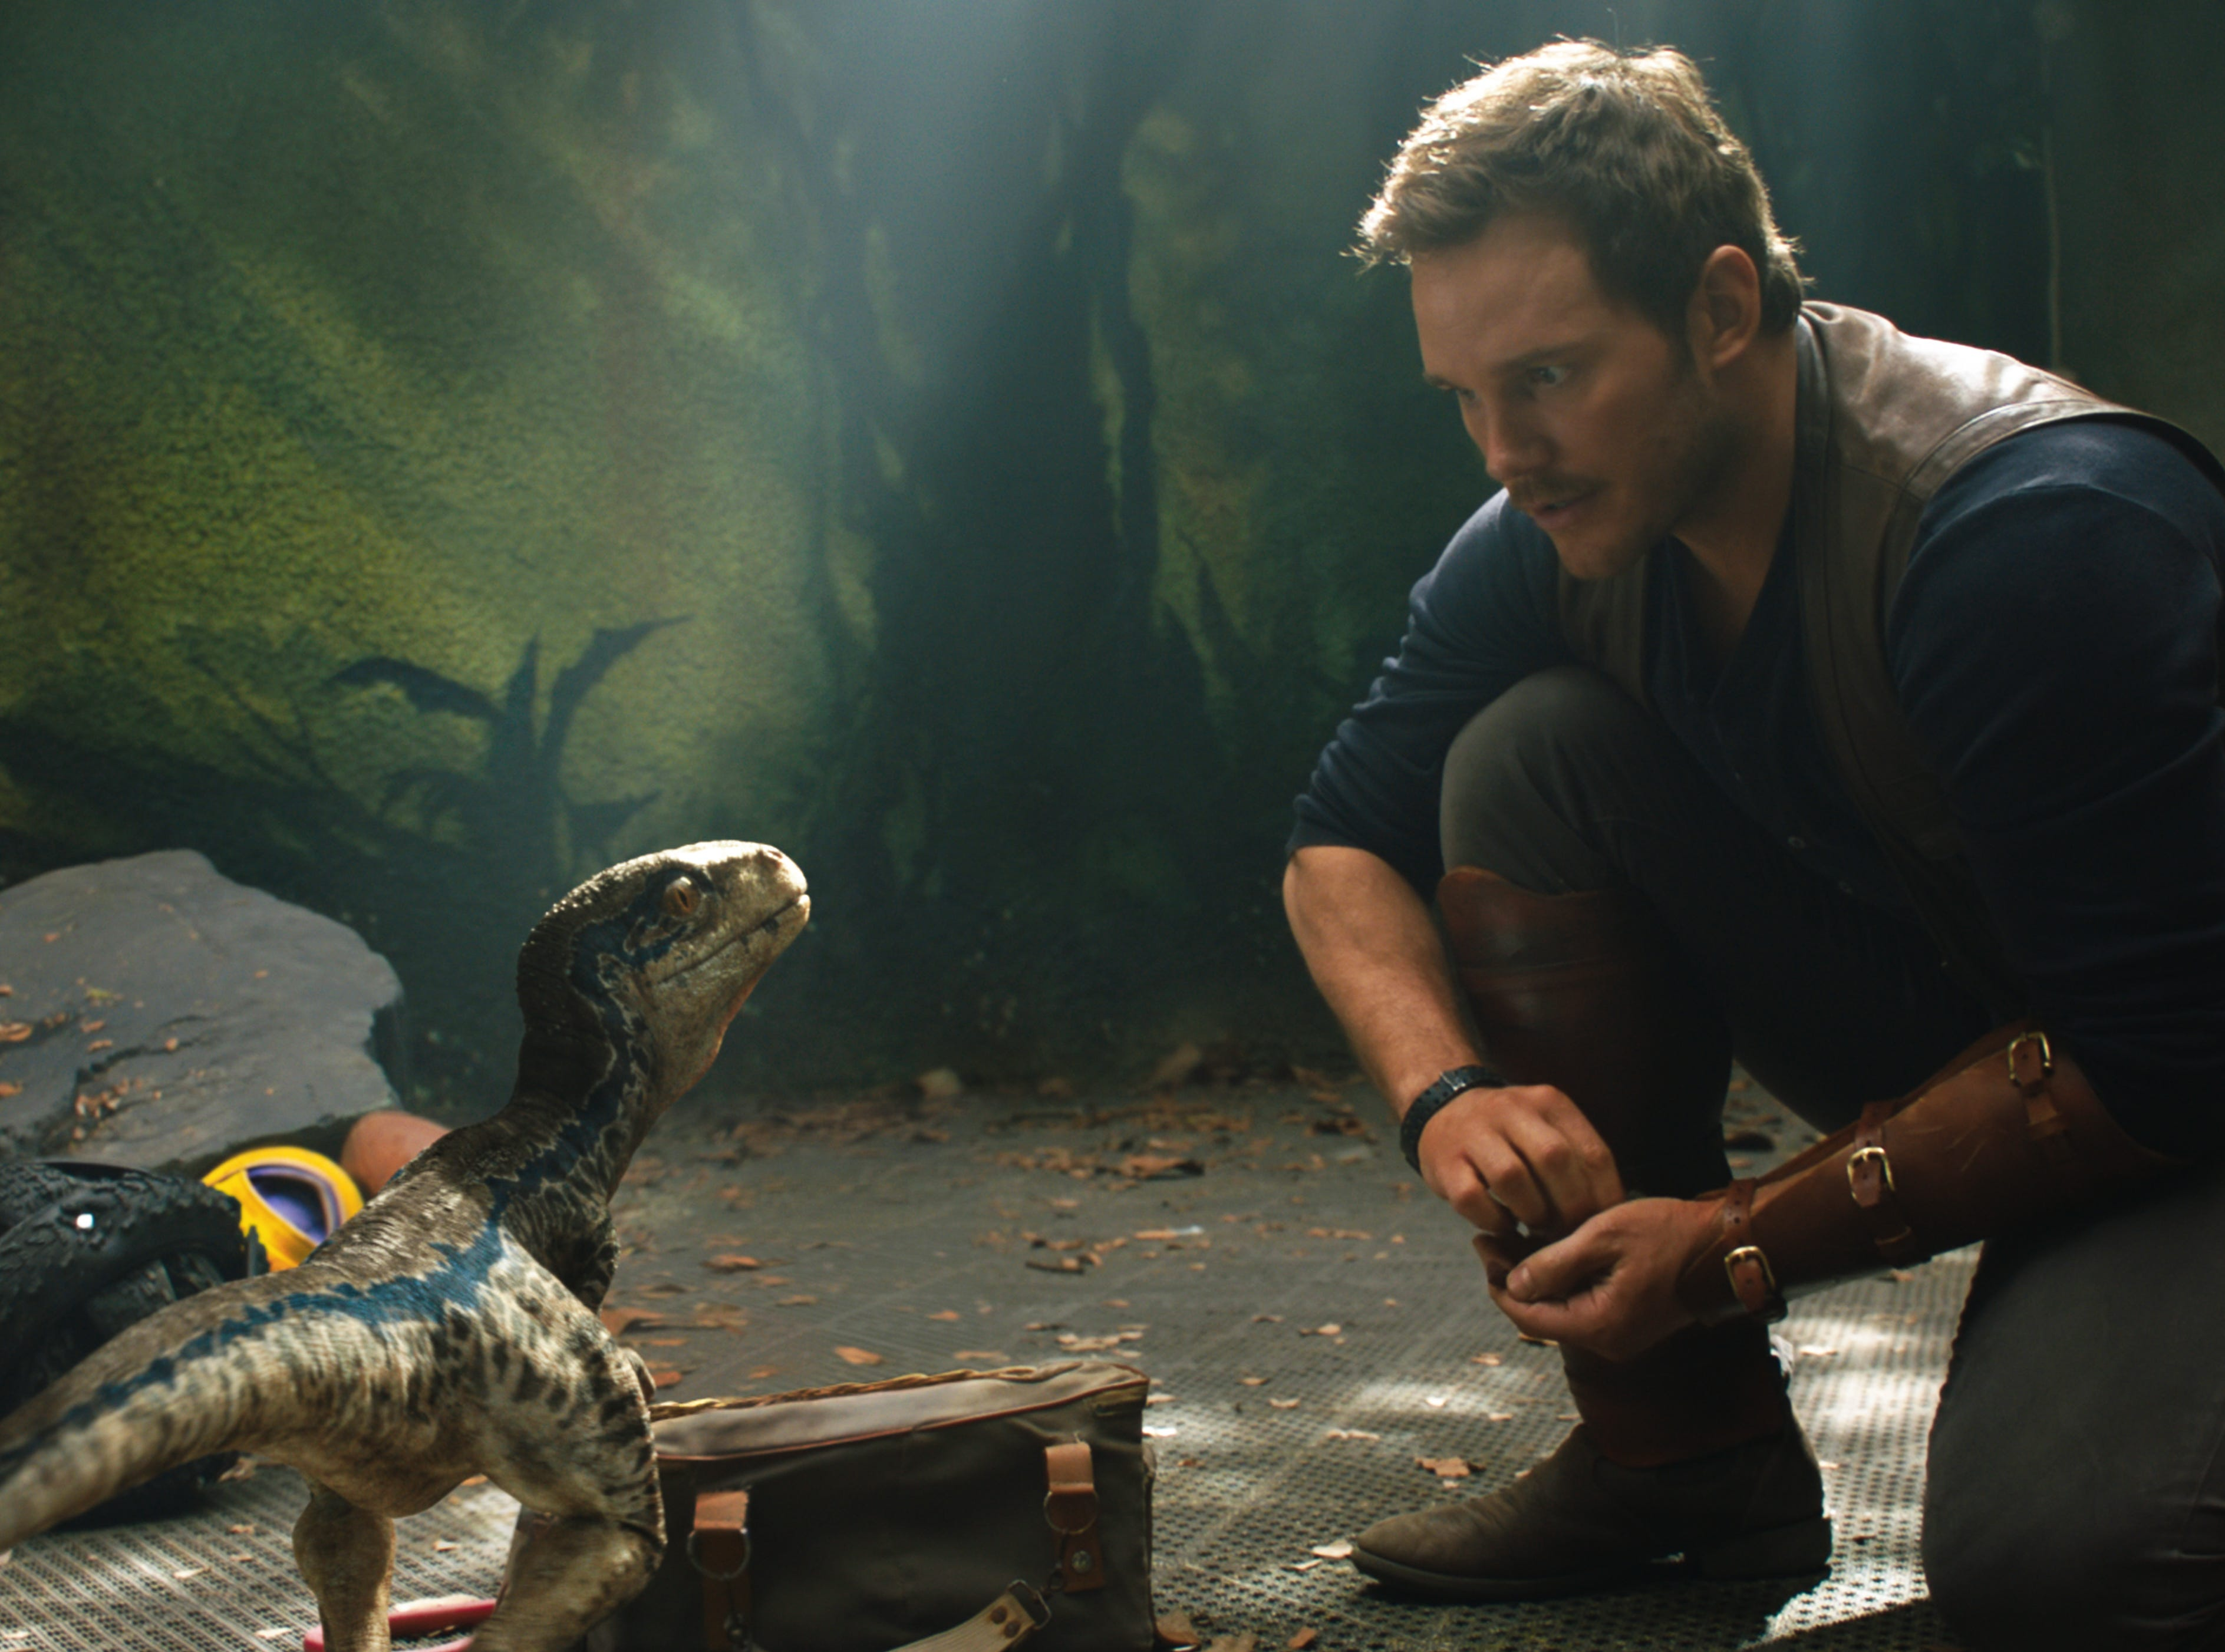 """Owen (CHRIS PRATT) with a baby Velociraptor in """"Jurassic World: Fallen Kingdom."""" When the island's dormant volcano begins roaring to life, Owen and Claire (BRYCE DALLAS HOWARD) mount a campaign to rescue the remaining dinosaurs from this extinction-level event. Welcome to """"Jurassic World: Fallen Kingdom."""" [Via MerlinFTP Drop]"""